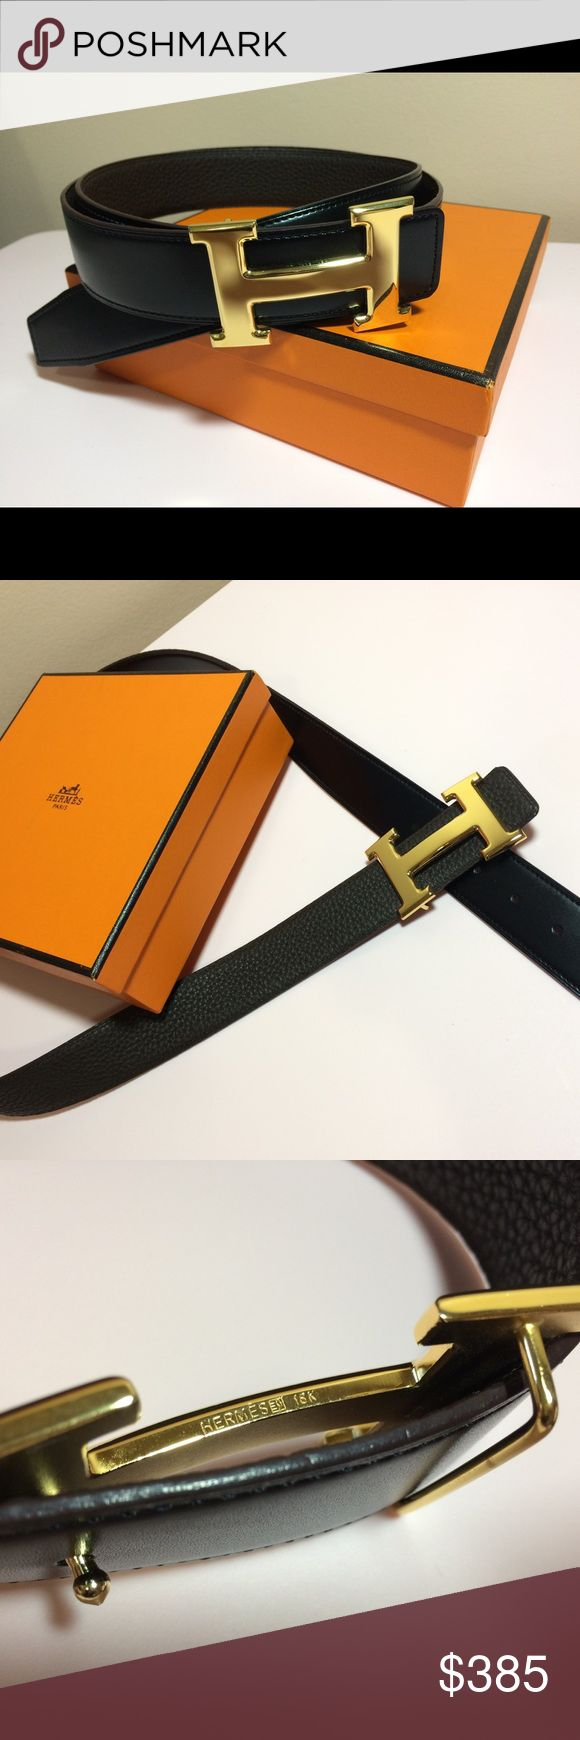 New and authentic Hermes reversible belt New and authentic Hermes  reversible men's belt  32mm calfskin  leather   Gold H buckle Size: 110 cm (38-40)   Comes with original box, papers. Hermes Accessories Belts